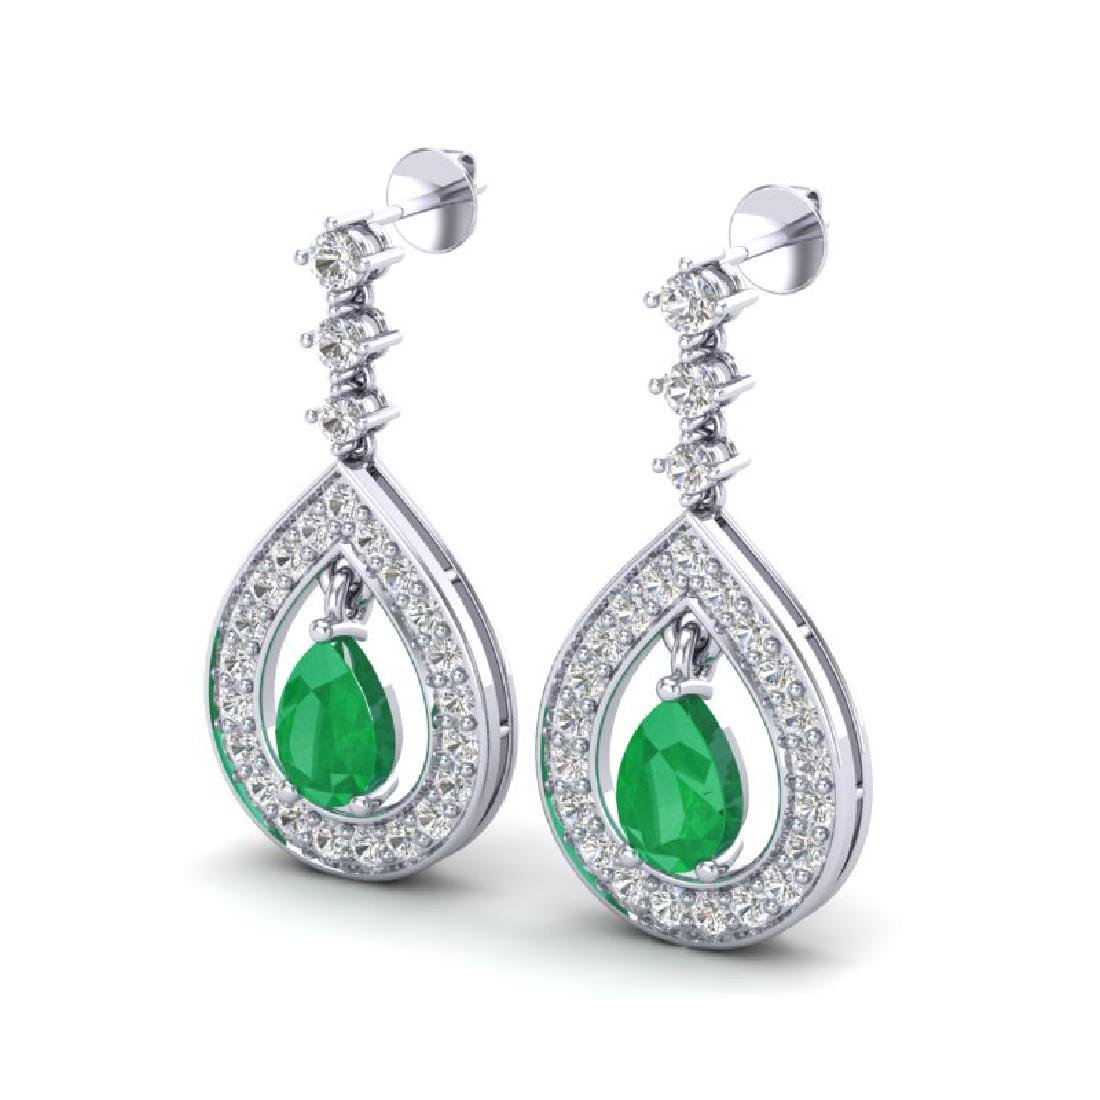 2.25 CTW Emerald & Micro Pave VS/SI Diamond Earrings